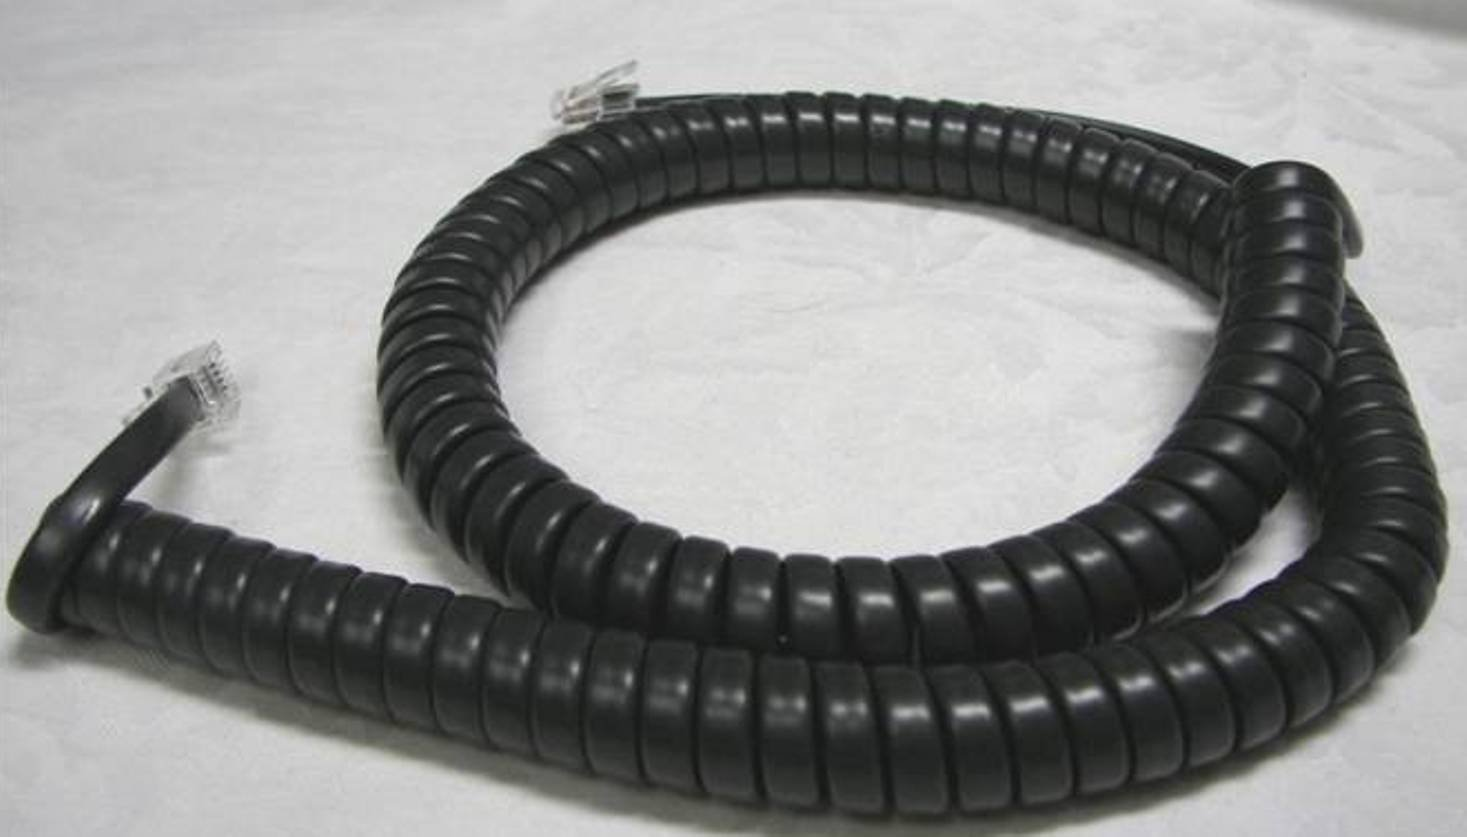 Lot of 100 Dark Gray (Black) 12' Ft Phone Handset Cords for Nortel Norstar T7100 T7208 T7316 T7316e Meridian T M3900 Series M3901 M3902 M3903 M3904 M3905 Aastra M8003 M8009 Charcoal by DIY-BizPhones